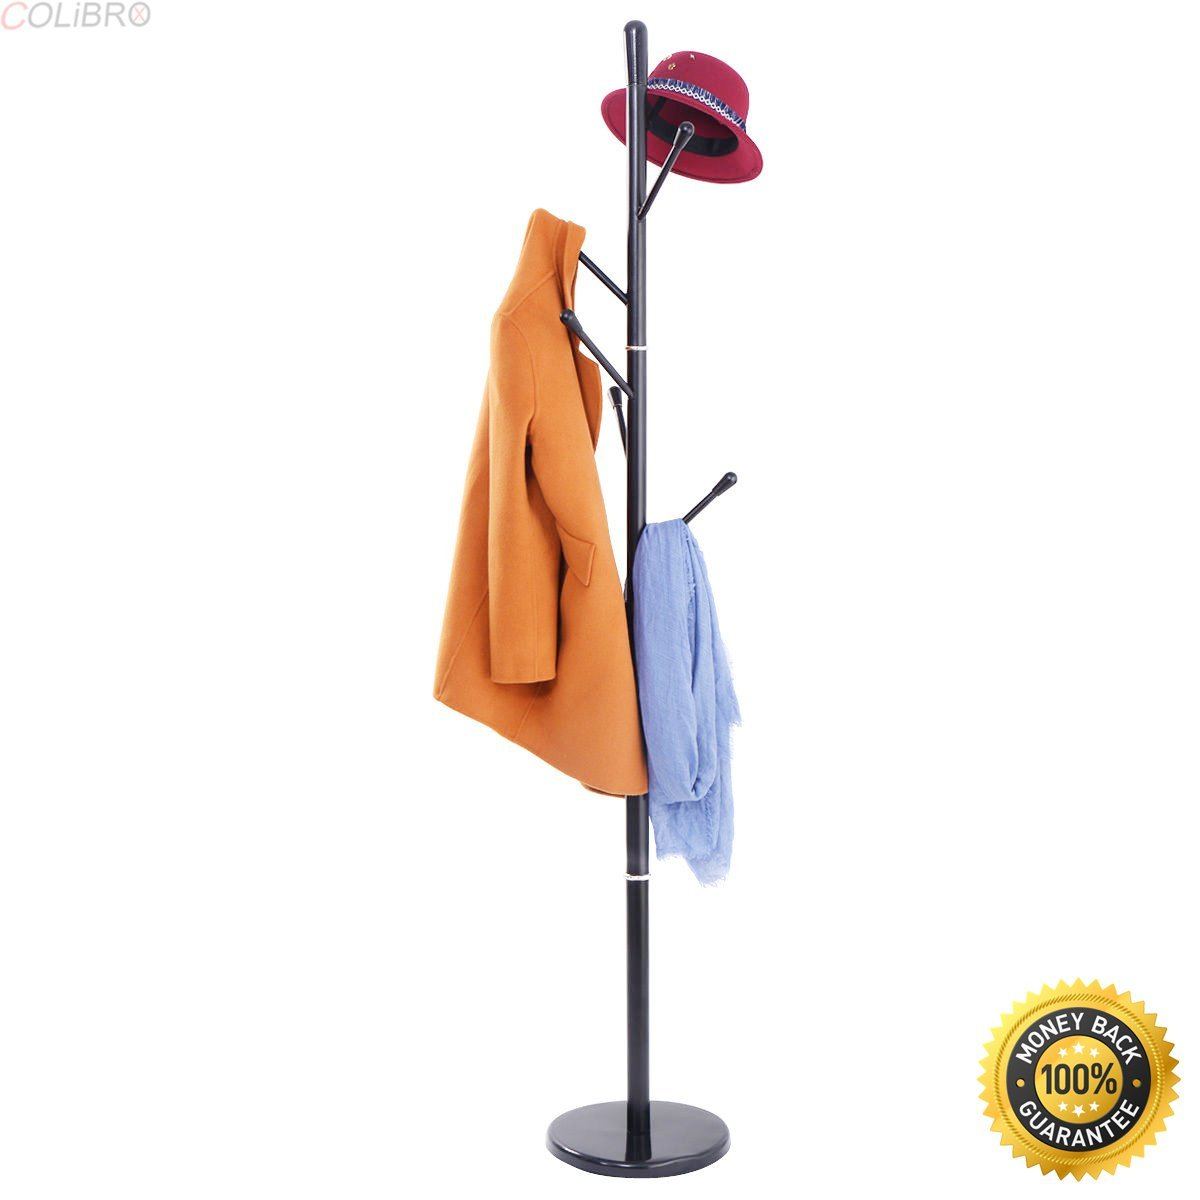 COLIBROX--Metal Coat Rack Hat Tree Stand Clothes Holder Umbrella Bag Hanger Hall Black New,Stylish Coat Rack,Simple Coat Rack,stand coat hanger,modern coat stand,